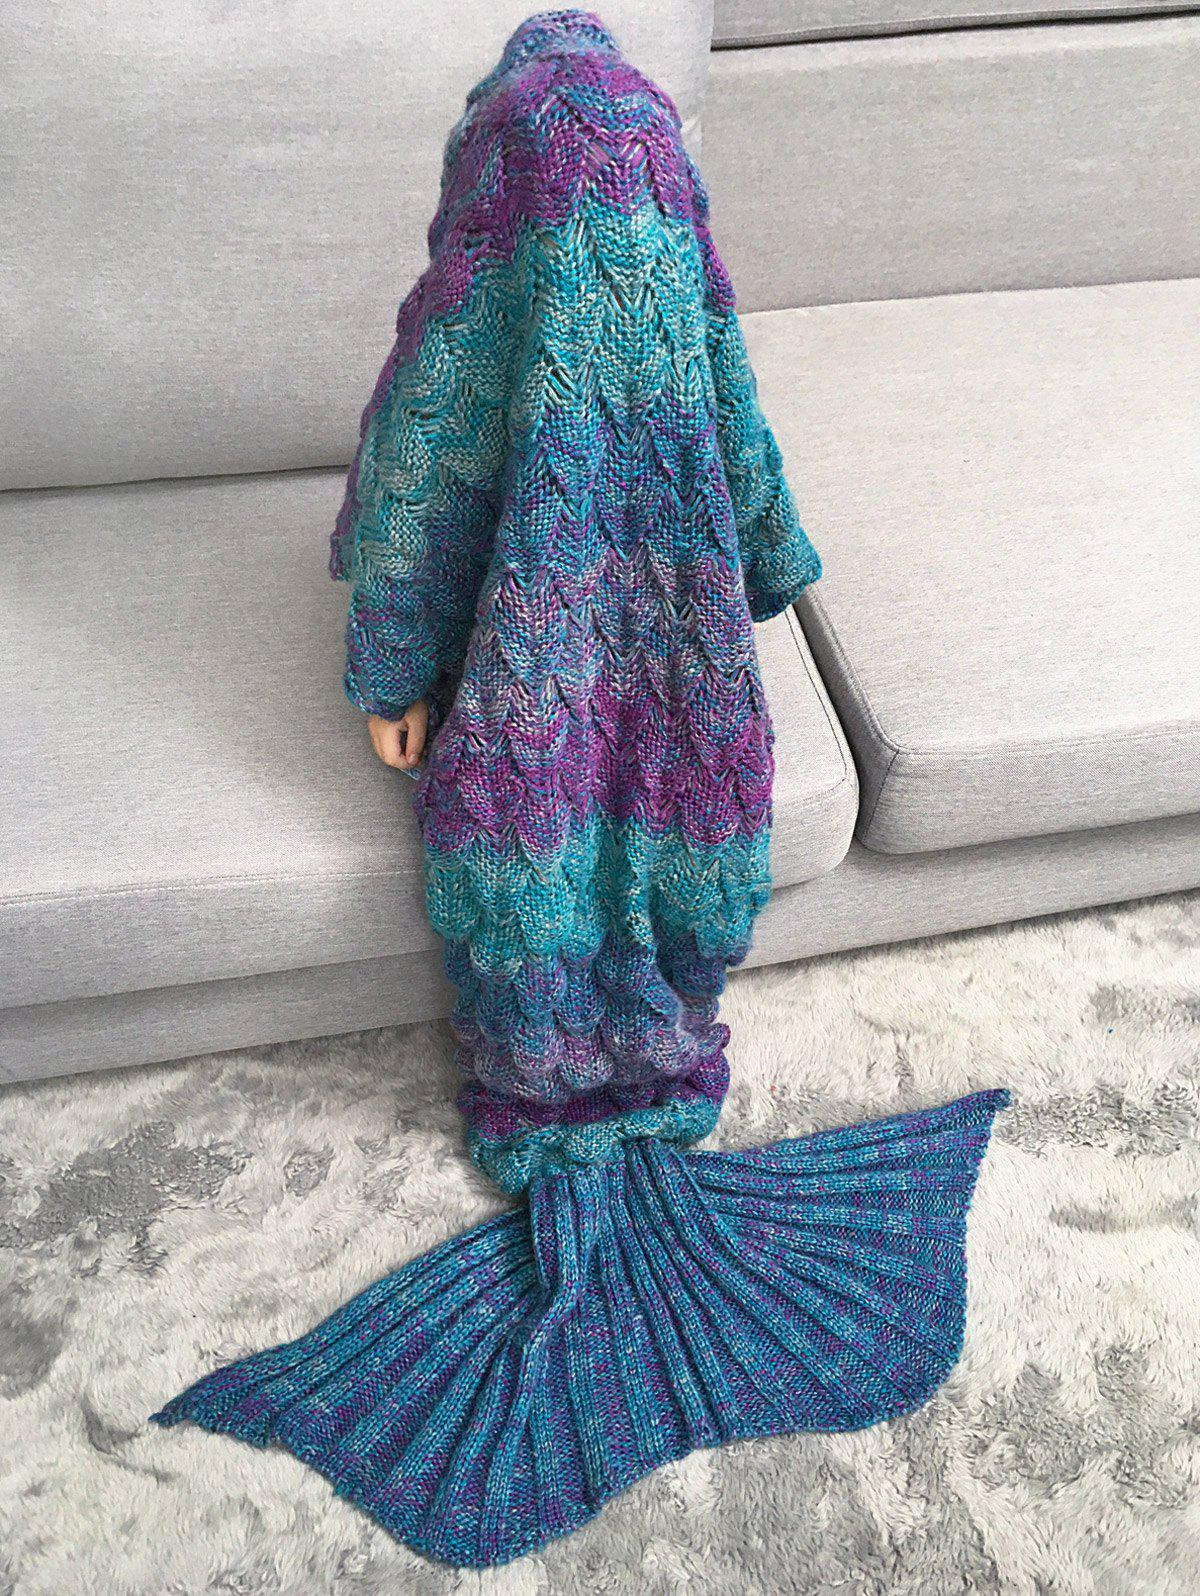 Warmth Knitted Fish Scales Mermaid Blanket For KidsHOME<br><br>Color: COLORMIX; Type: Knitted; Material: Acrylic; Pattern Type: Solid; Size(L*W)(CM): 140*90cm; Weight: 0.720kg; Package Contents: 1 x Blanket;